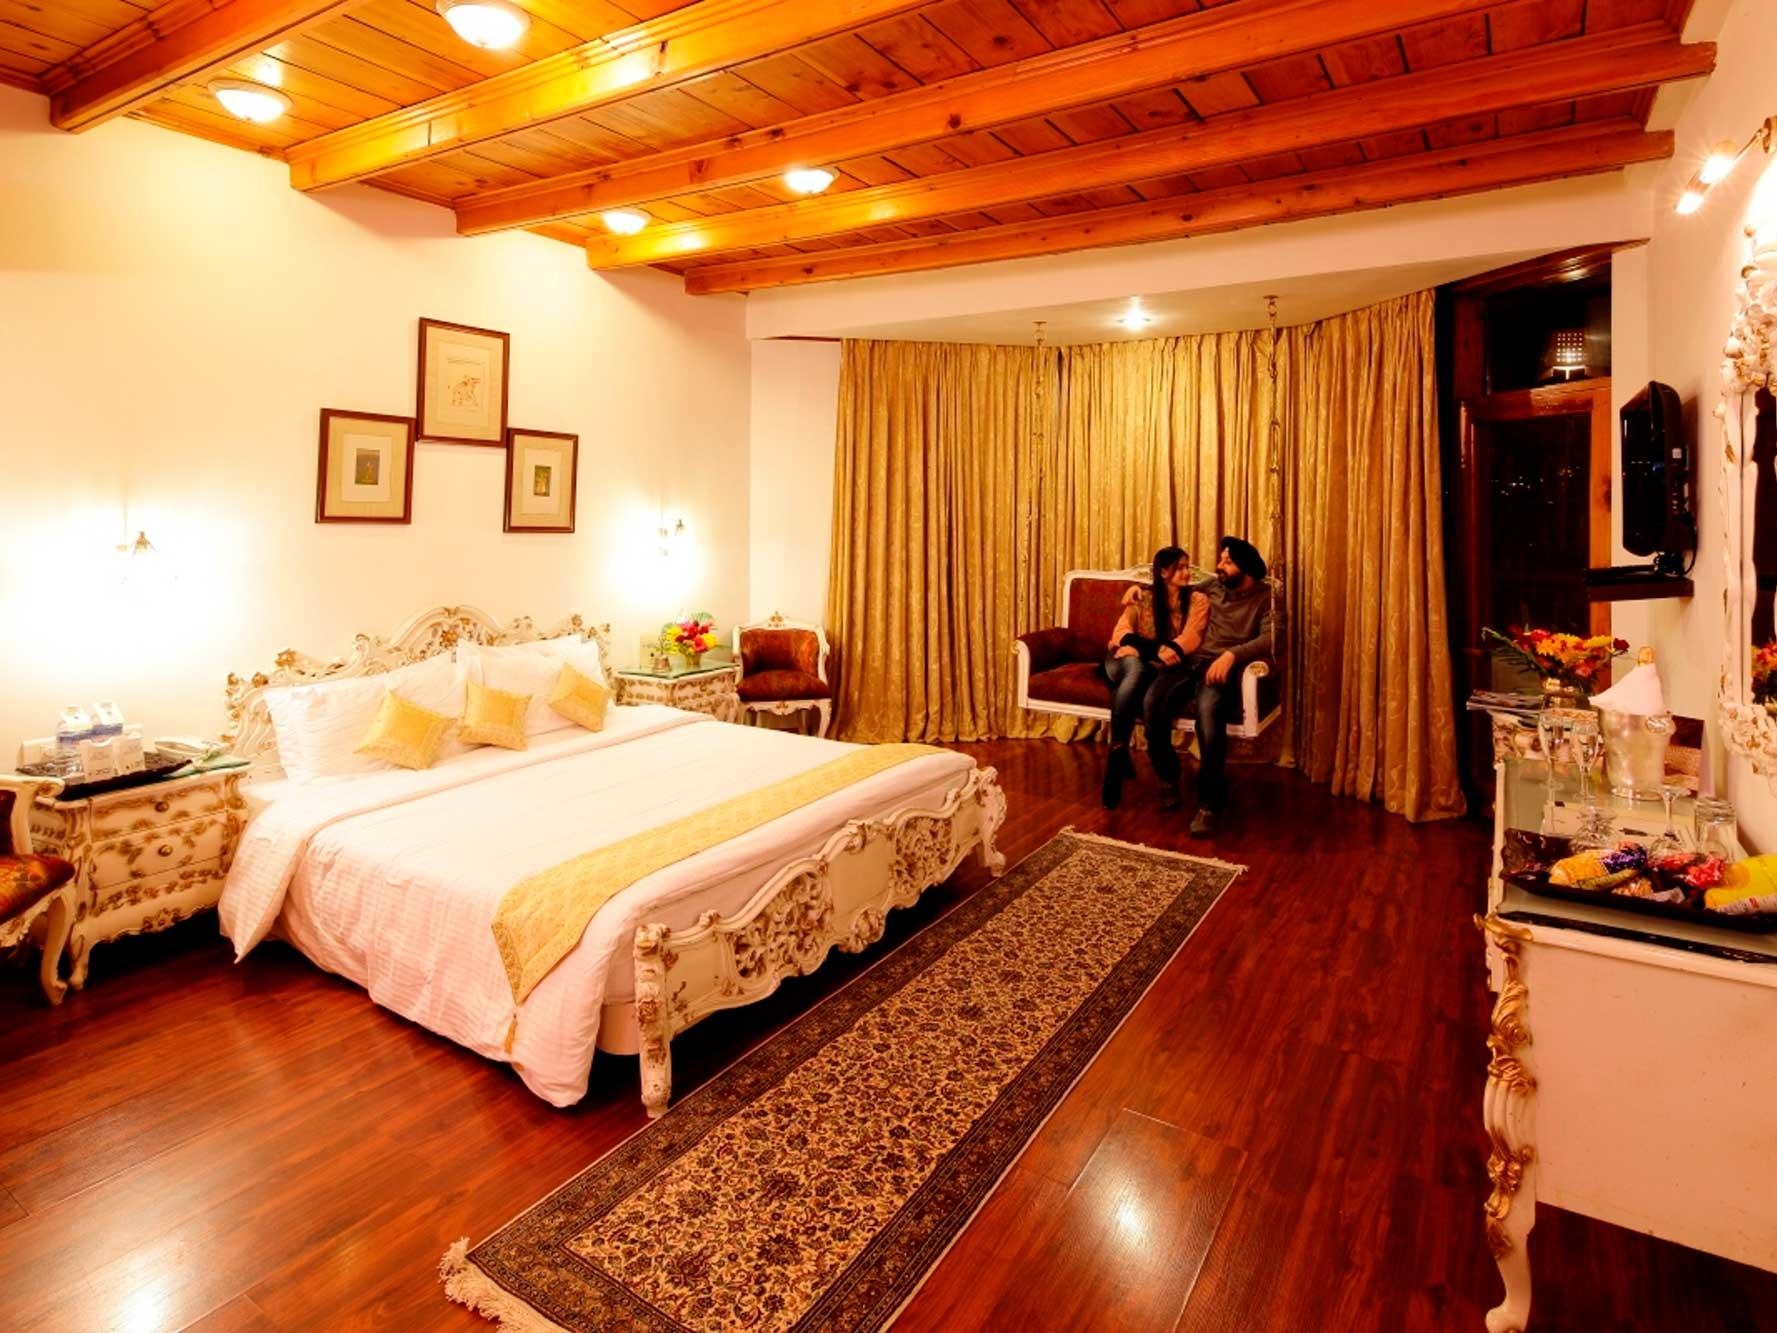 Royal Suite at ManuAllaya Resort Spa Manali in Himachal Pradesh, India